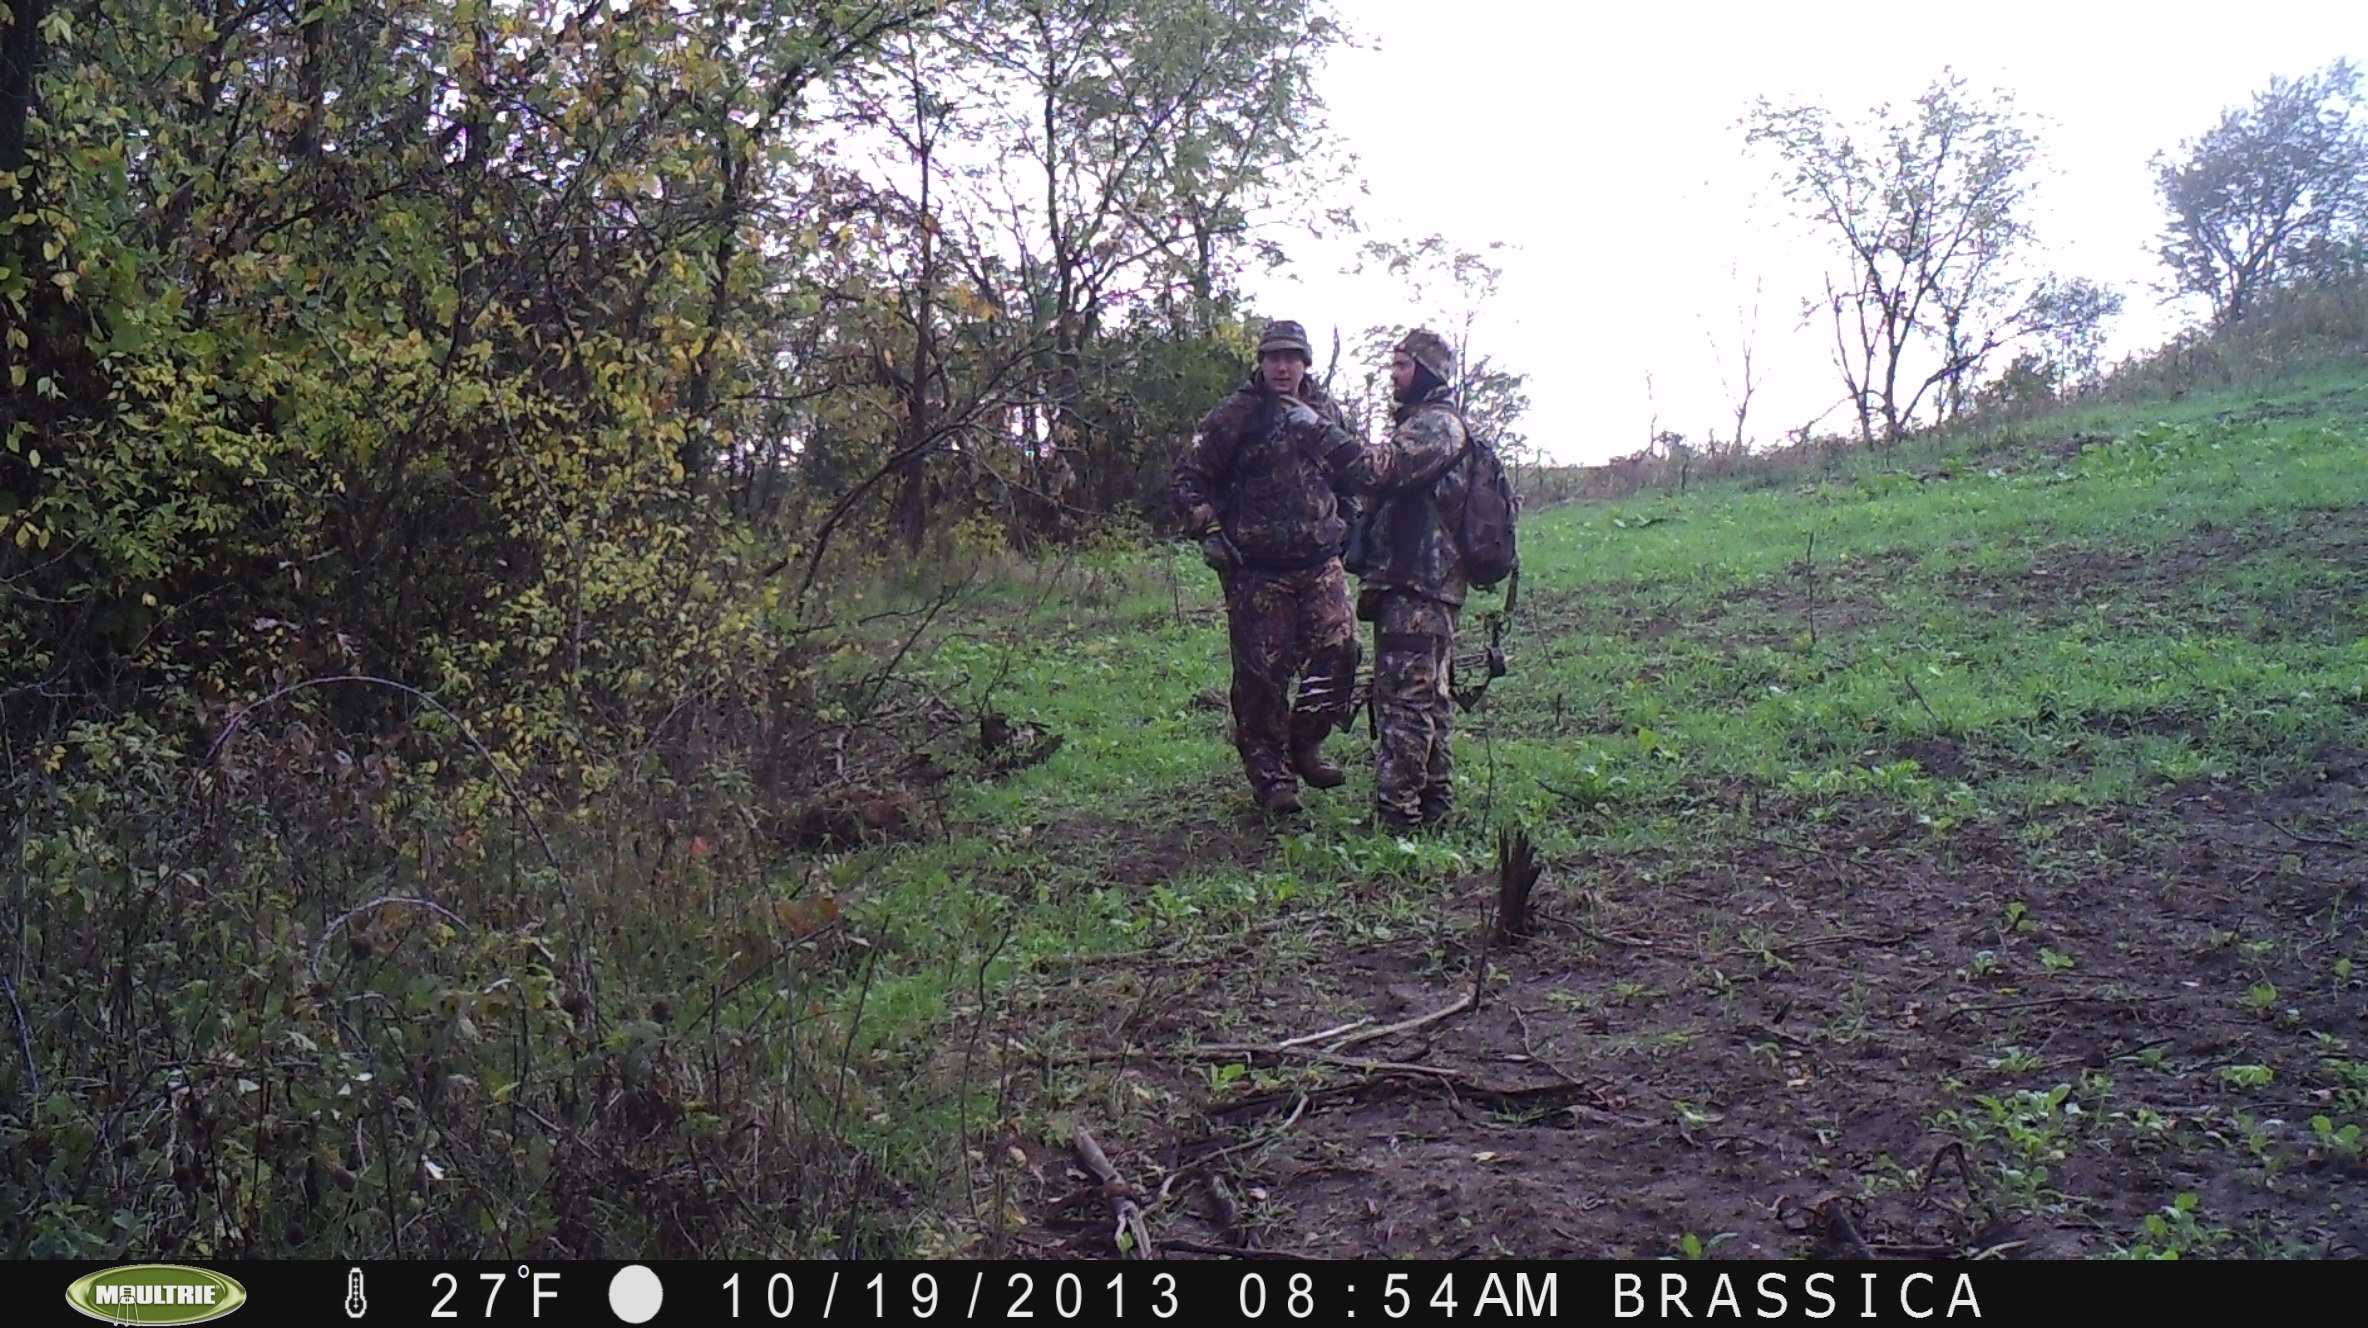 One of my trail cameras caught Ryan and I doing some spot scouting after a morning hunt.